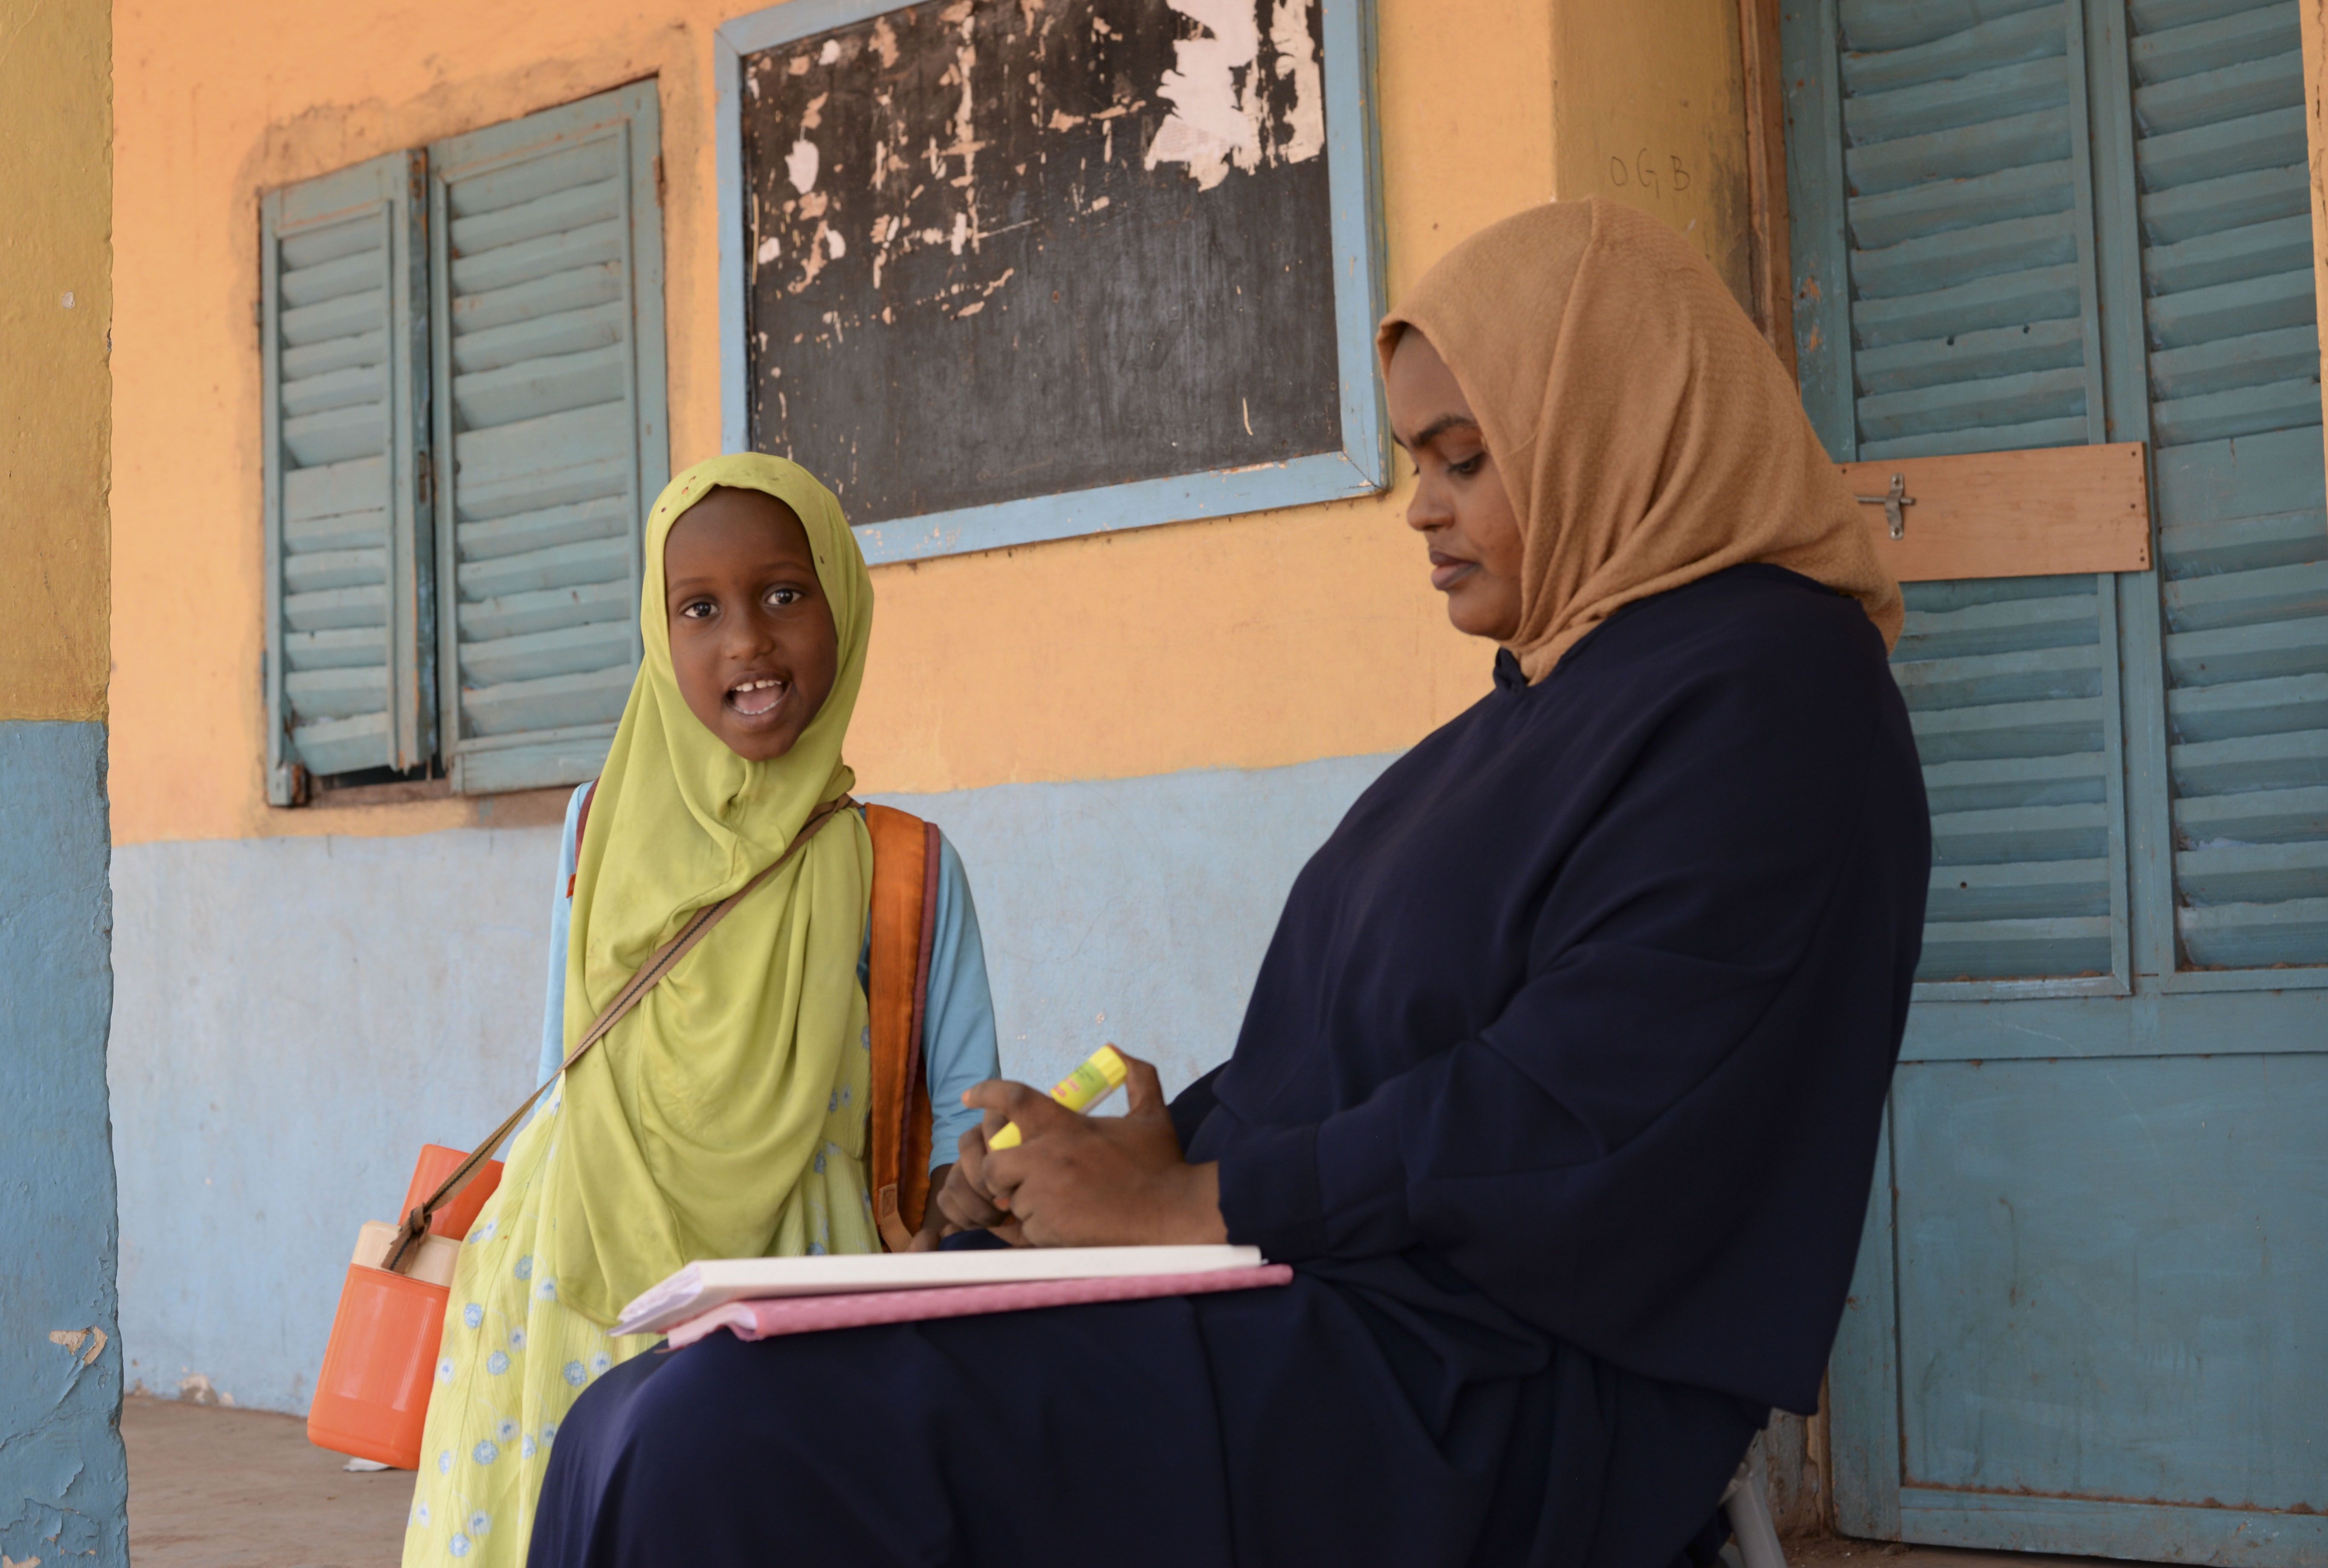 A student and her mother work on lessons together outside a school in Dikhil, Djibouti, Sept. 27, 2016. A new schoolhouse addition is scheduled to open later this year that will provide additional classrooms to accommodate a growing Dikhil population and local nomadic tribes that also send their children to Dikhil schools. (U.S. Air Force photo by Staff Sgt. Benjamin Raughton)